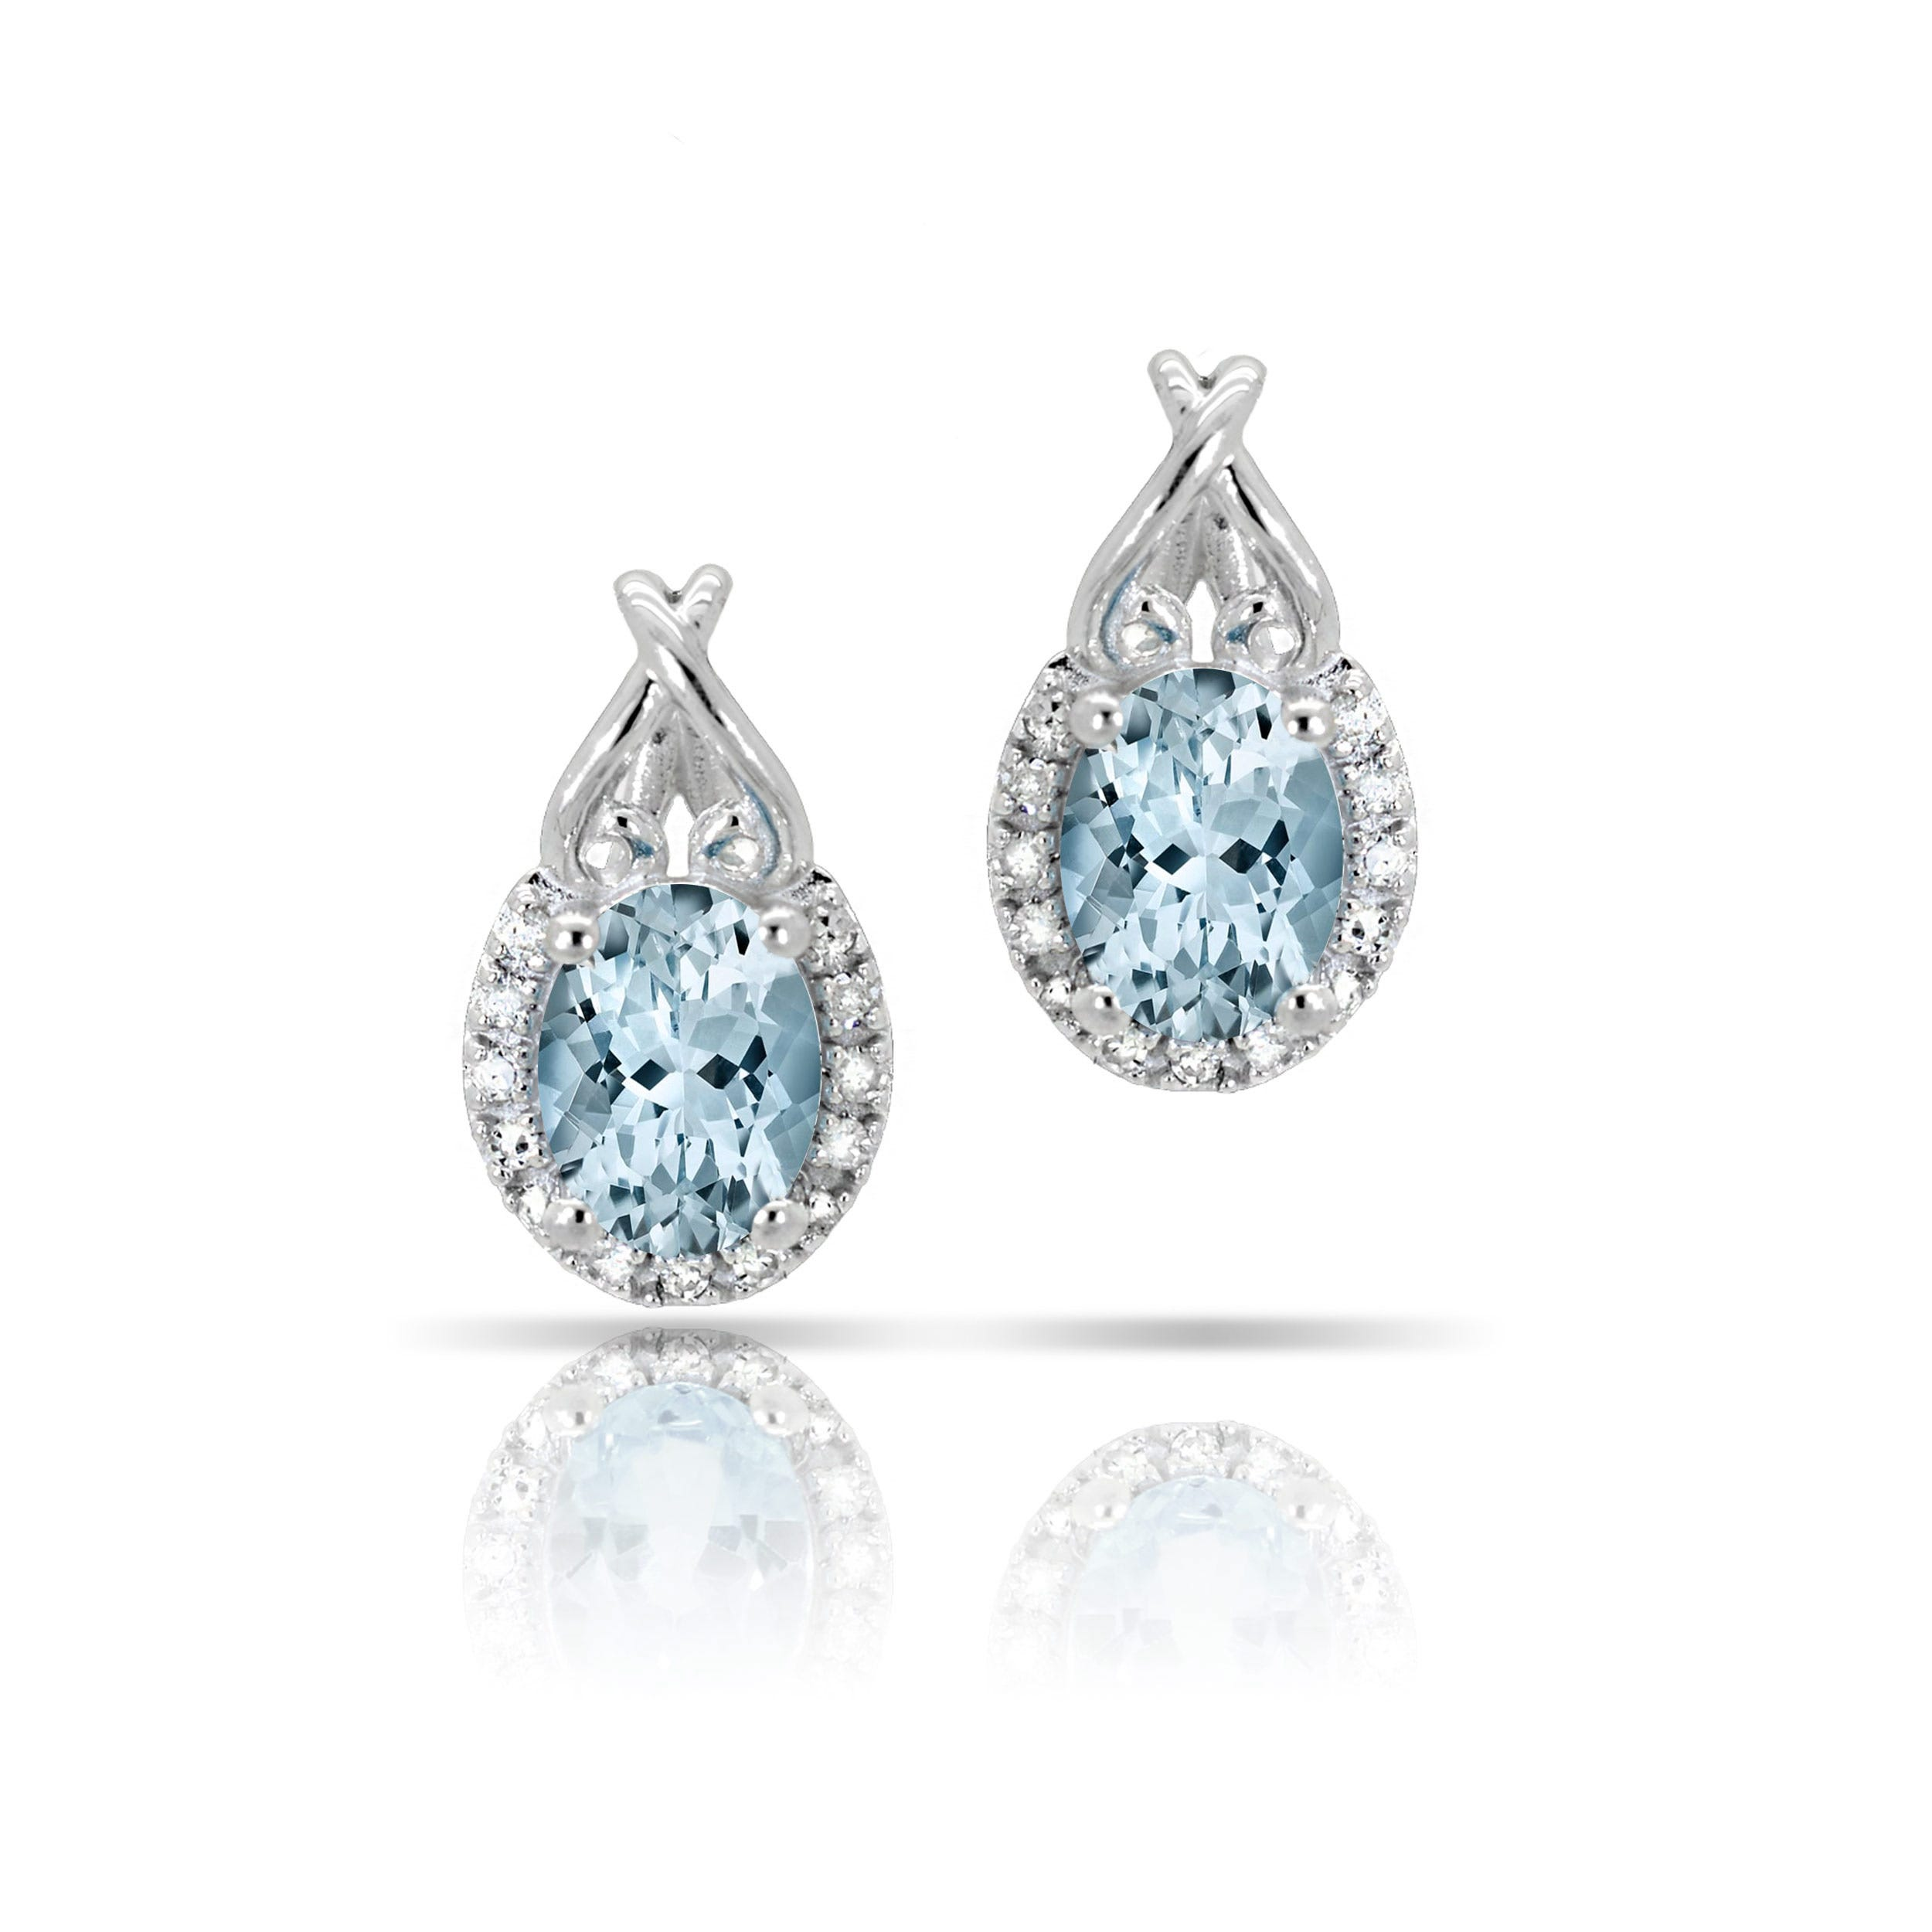 Aquamarine & Diamond Oval Heart Earrings in 10k White Gold